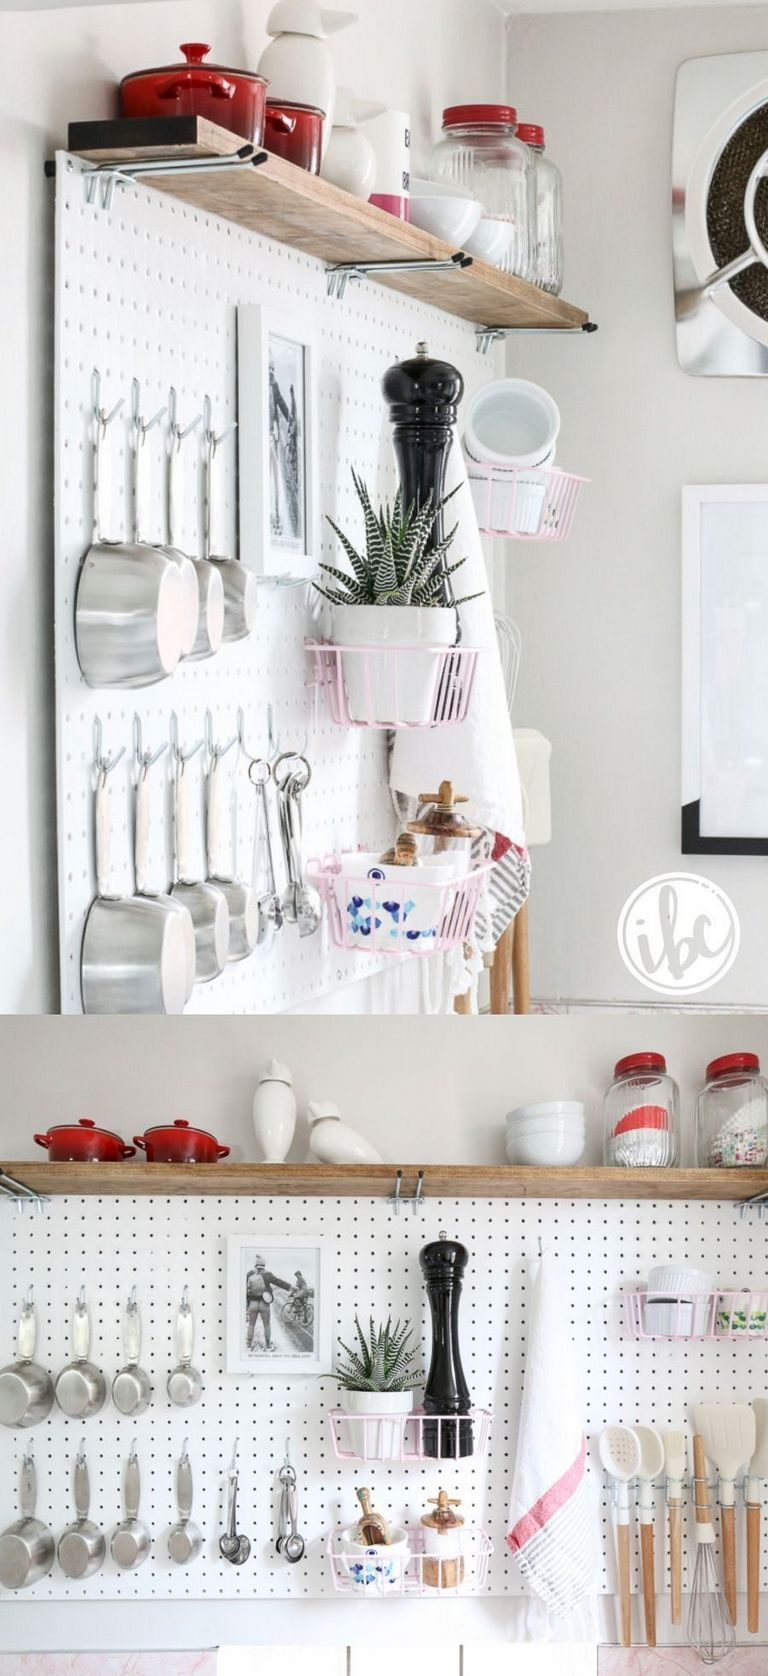 Pegboard Kitchen Ideas